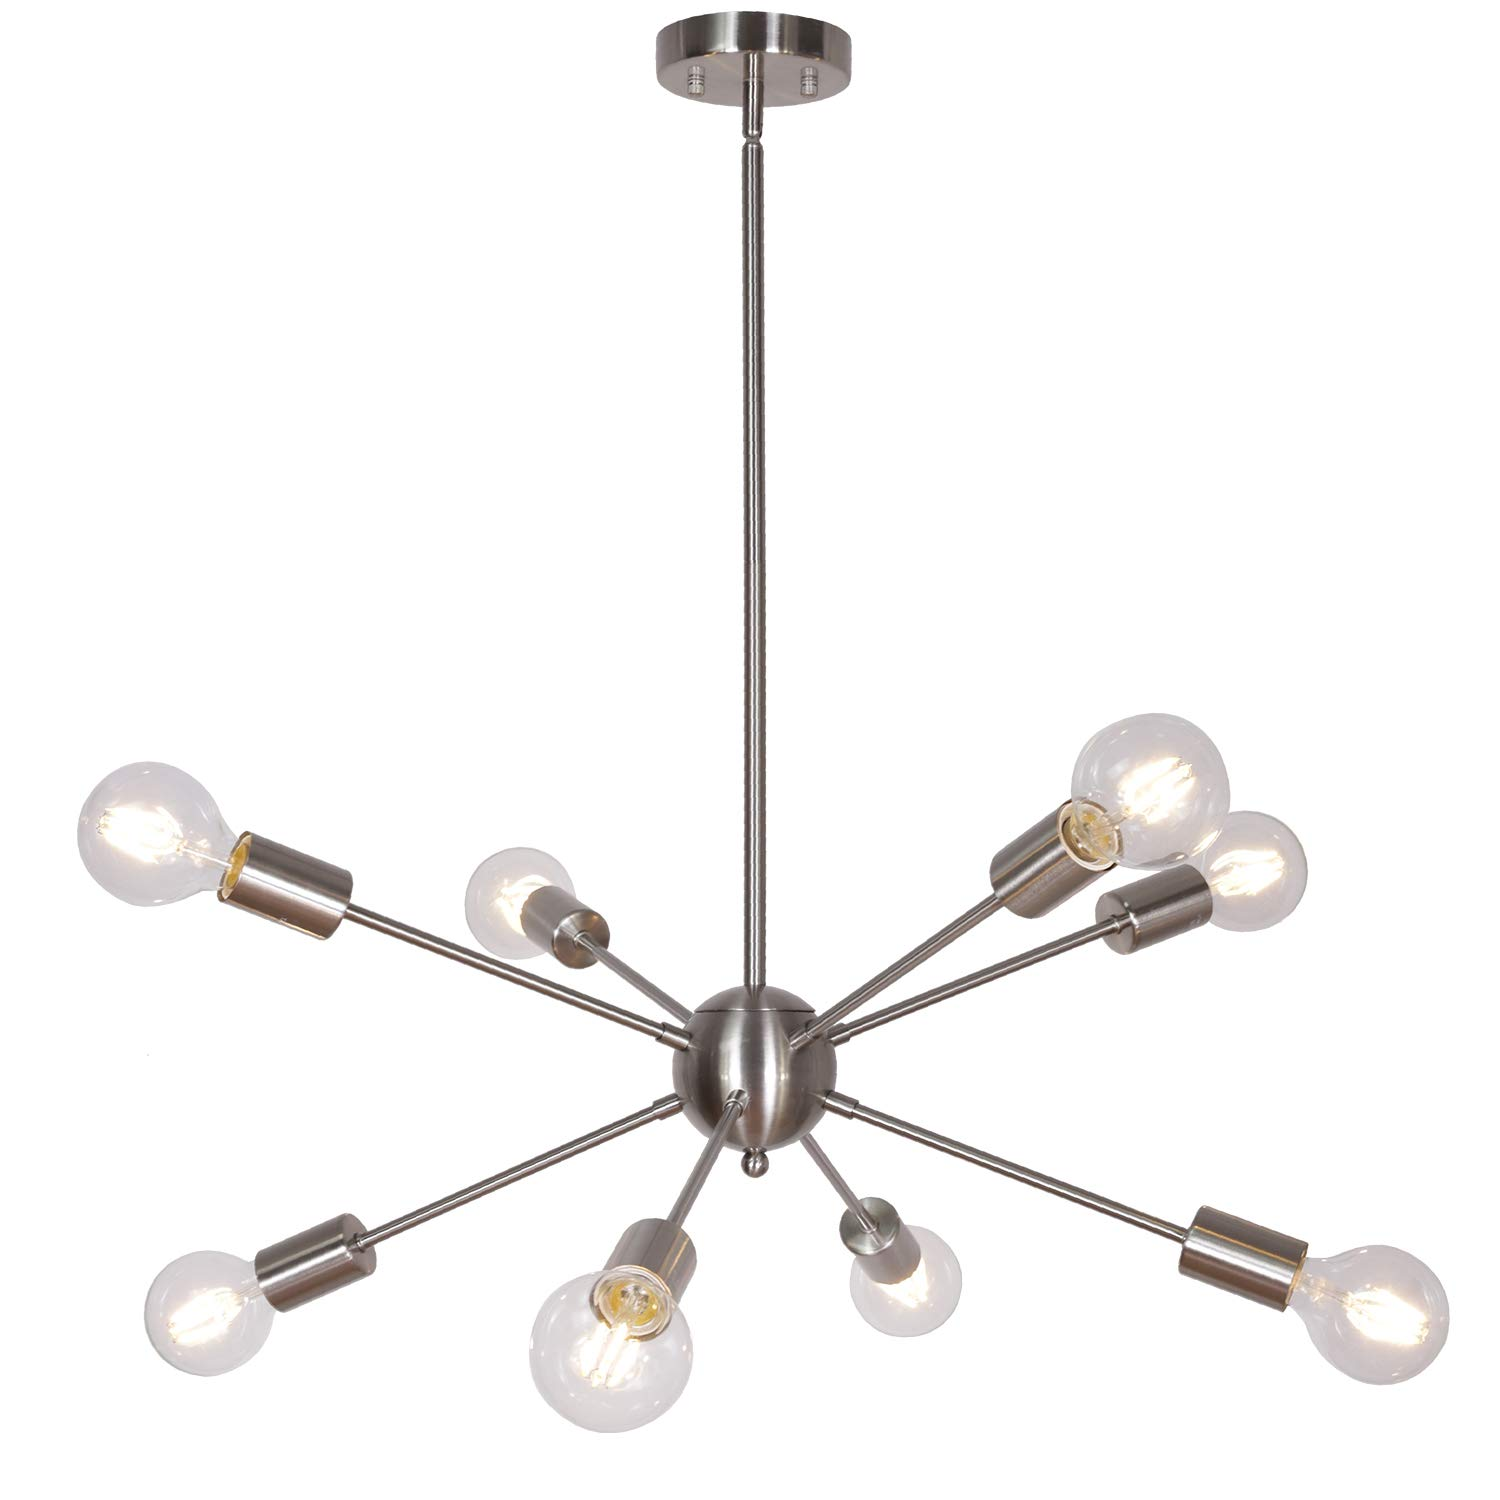 watch adf9a 86bd0 8-Light Modern Sputnik Pendant Light Brushed Nickel Mid Century Chandelier  Semi Flush Mount Ceiling Light for Foyer Bedroom Dining Room UL Listed by  ...